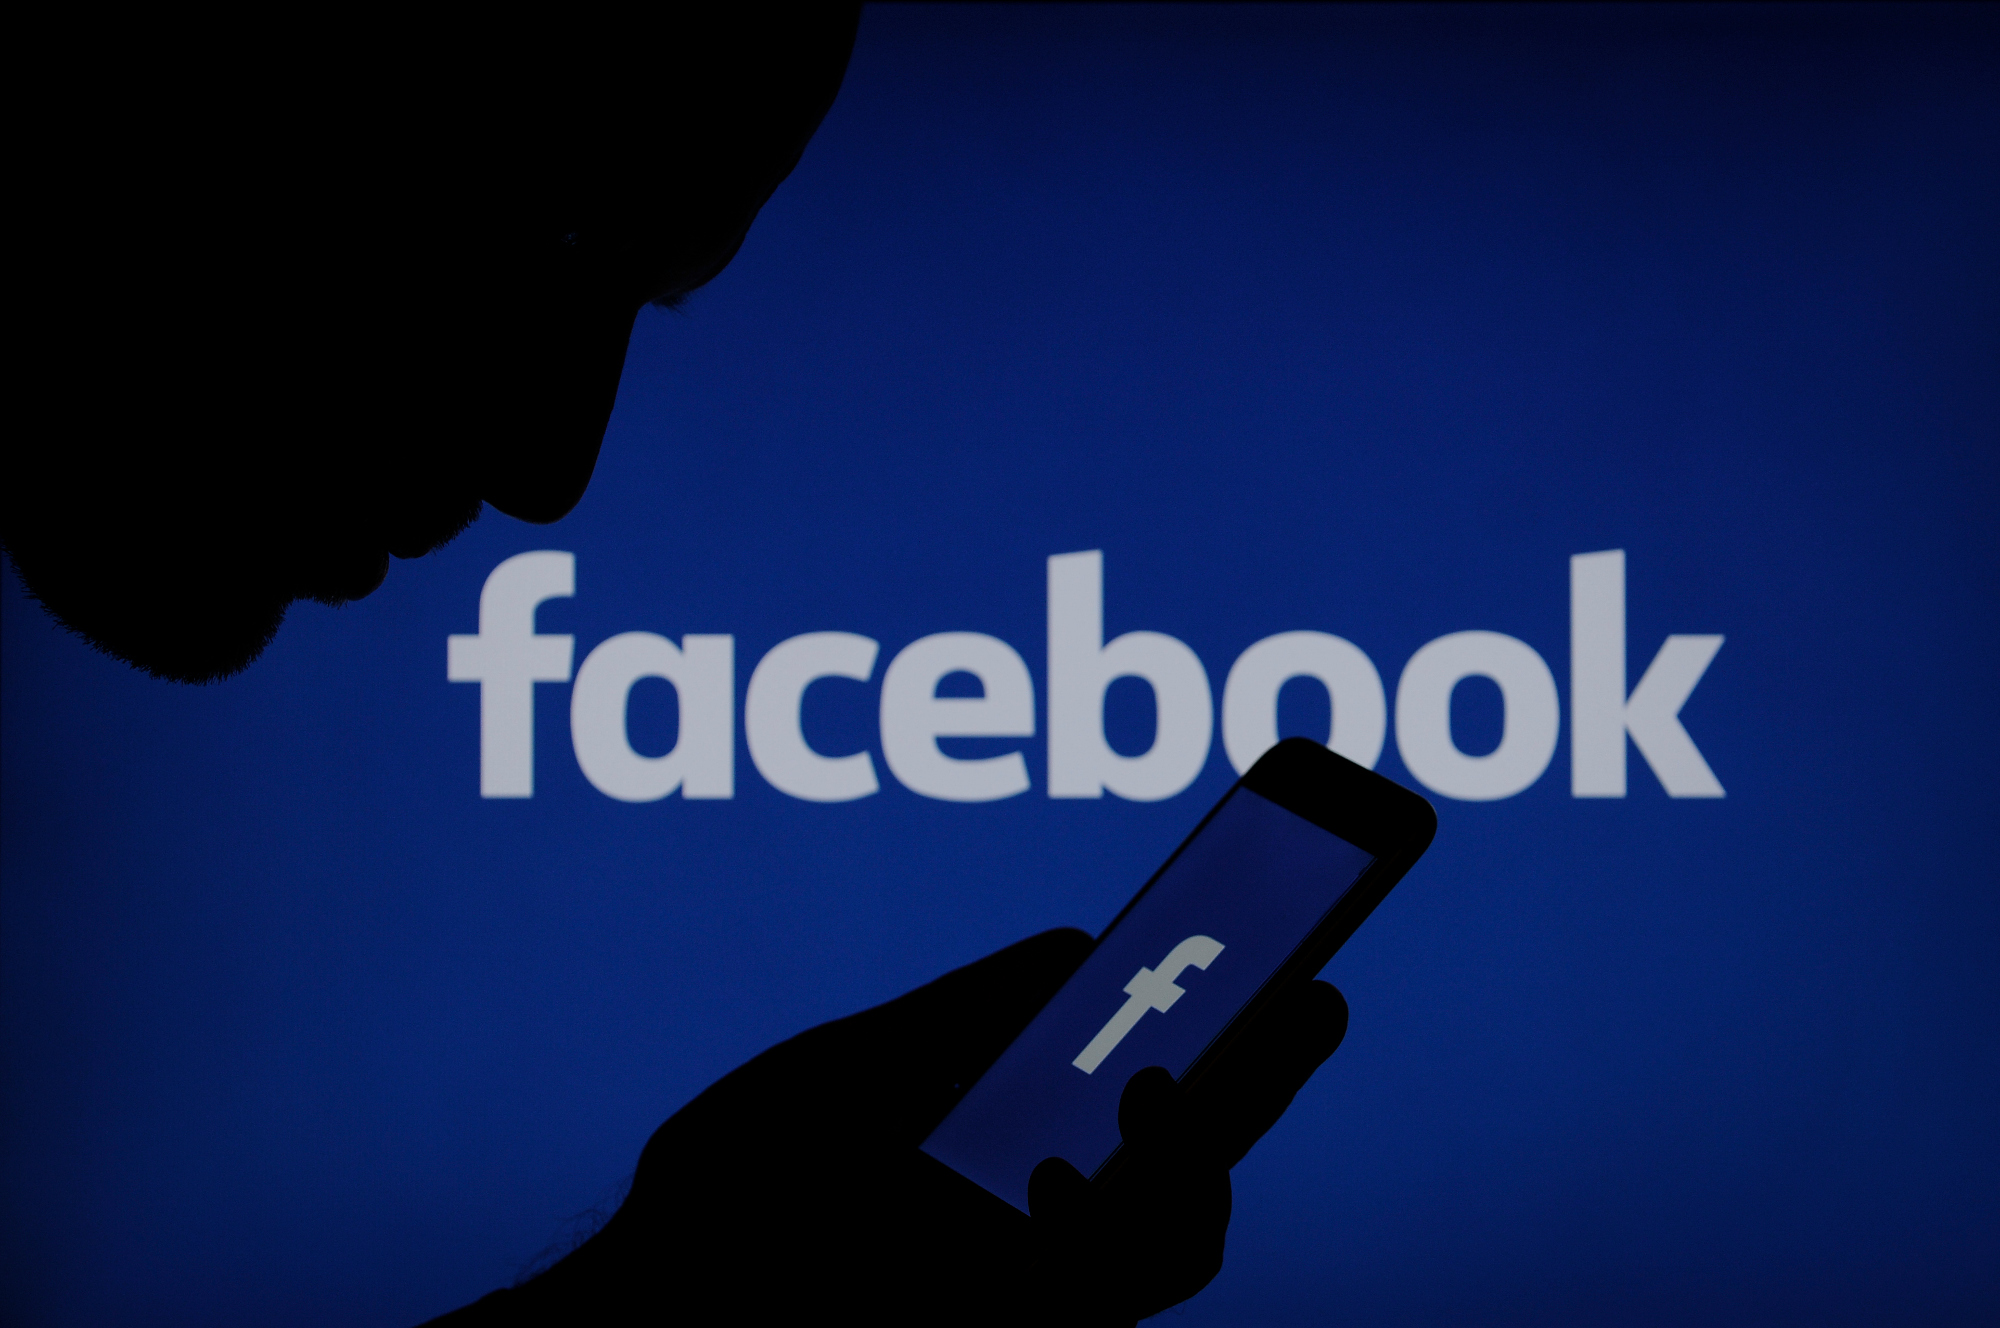 Facebook plans o bring Wi-Fi to remote areas by plane